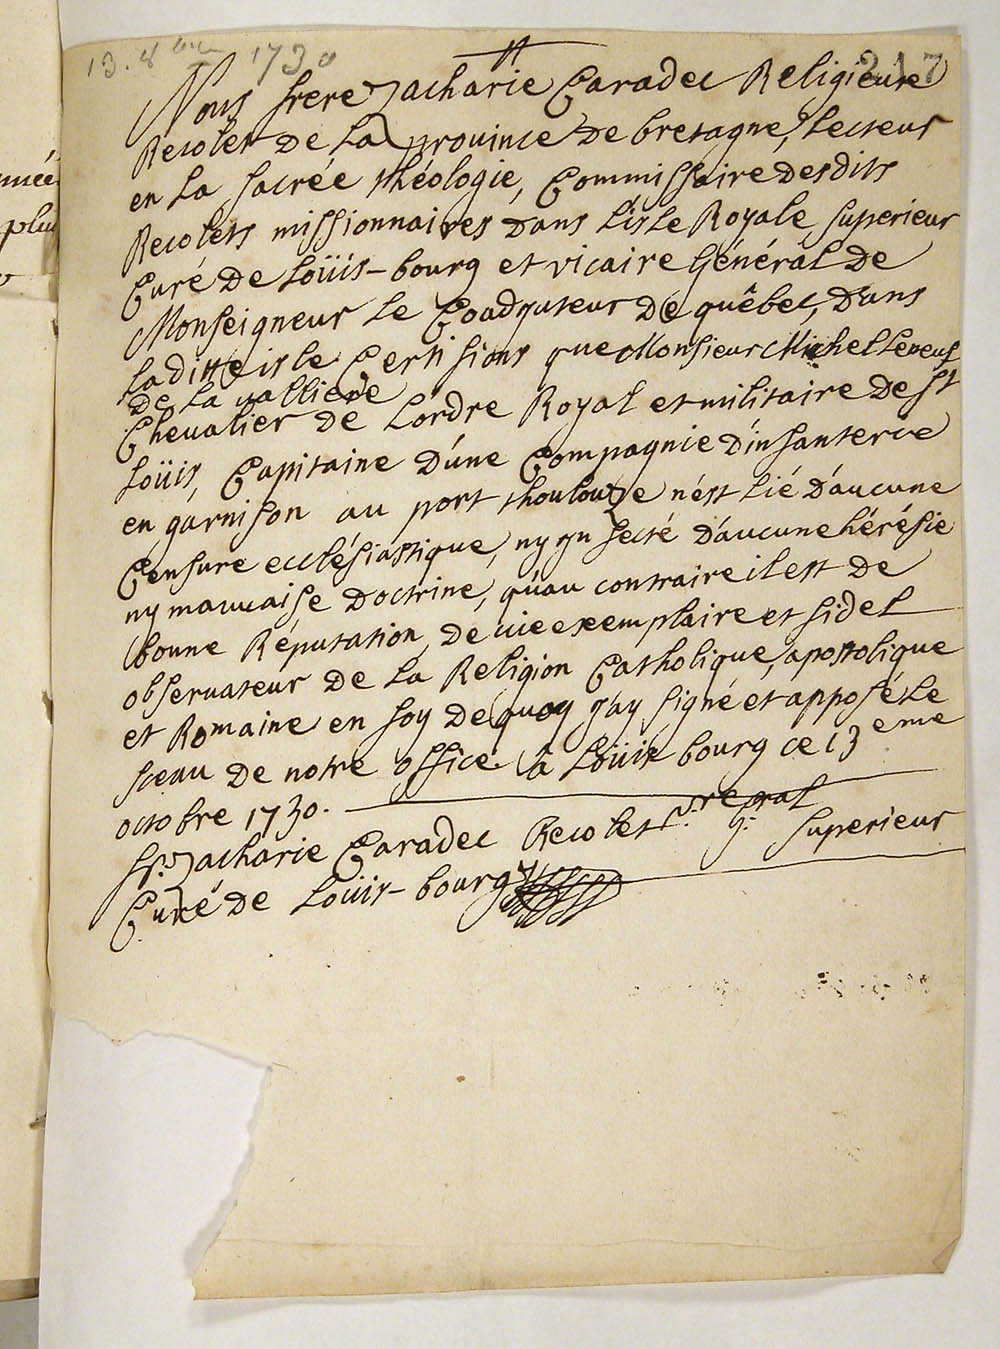 Certificate of Catholicity issued to Sieur Michel Leneuf de La Vallière, captain in Port-Toulouse, October 13, 1730, FR CAOM COL C11B 11 fol. 217